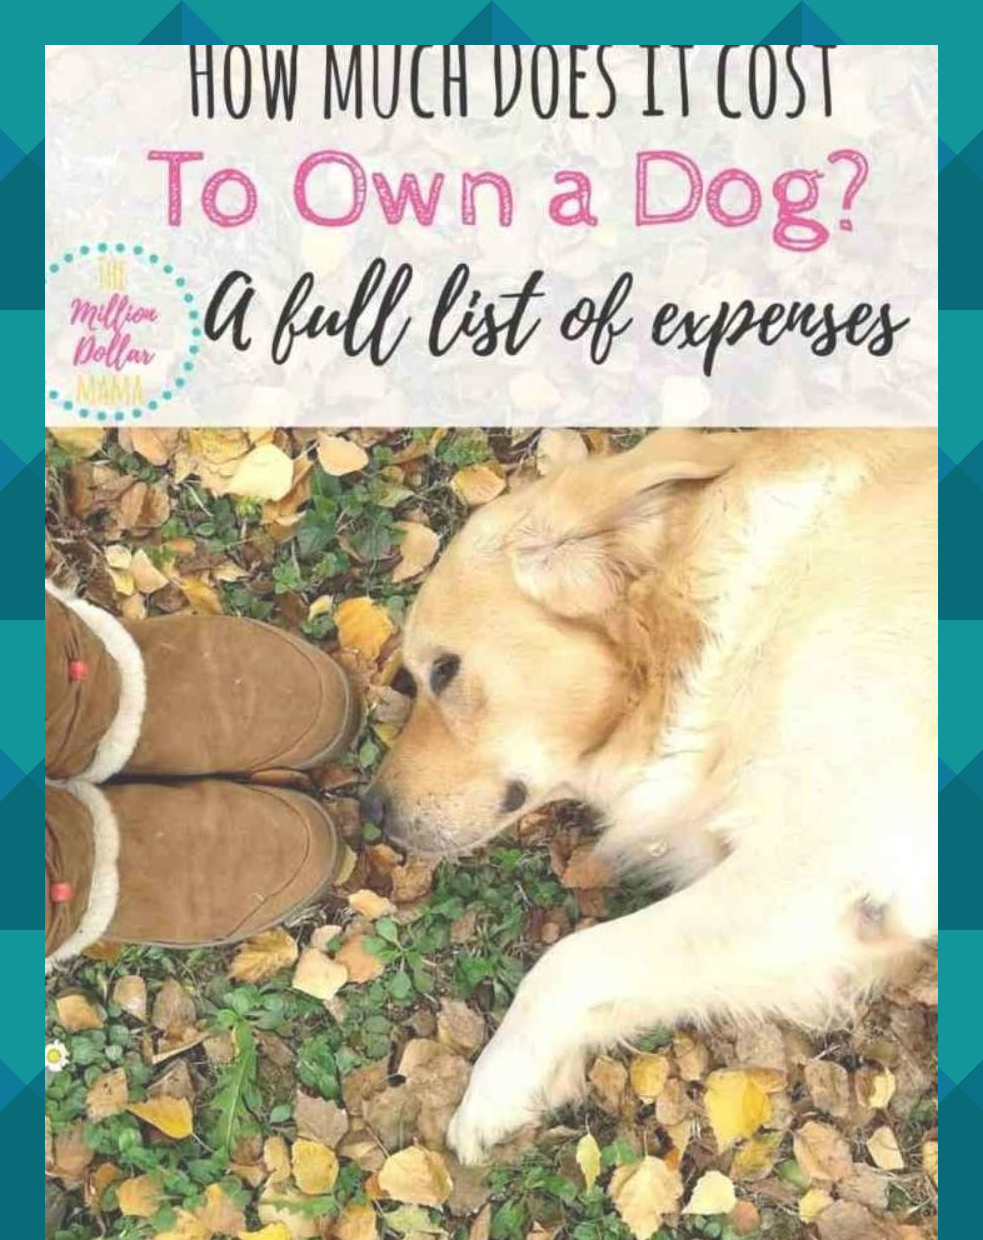 How Much Does It Cost To Own A Dog List Of Pet Expenses Cost Of Pet Ownership How Much Does A Dog Cost Each Year Dog List Pet Ownership